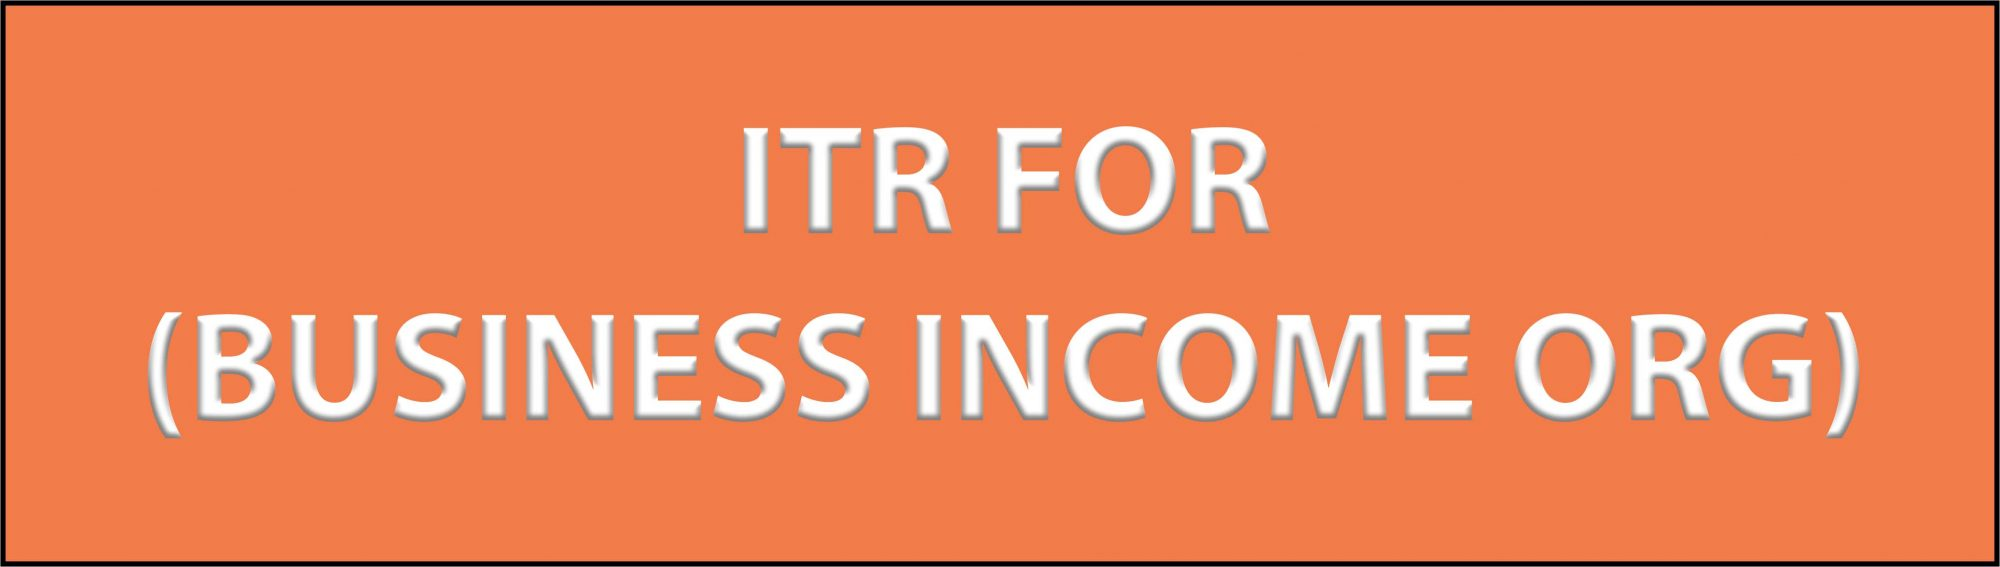 ITR FOR BUSINESS INCOME ORG